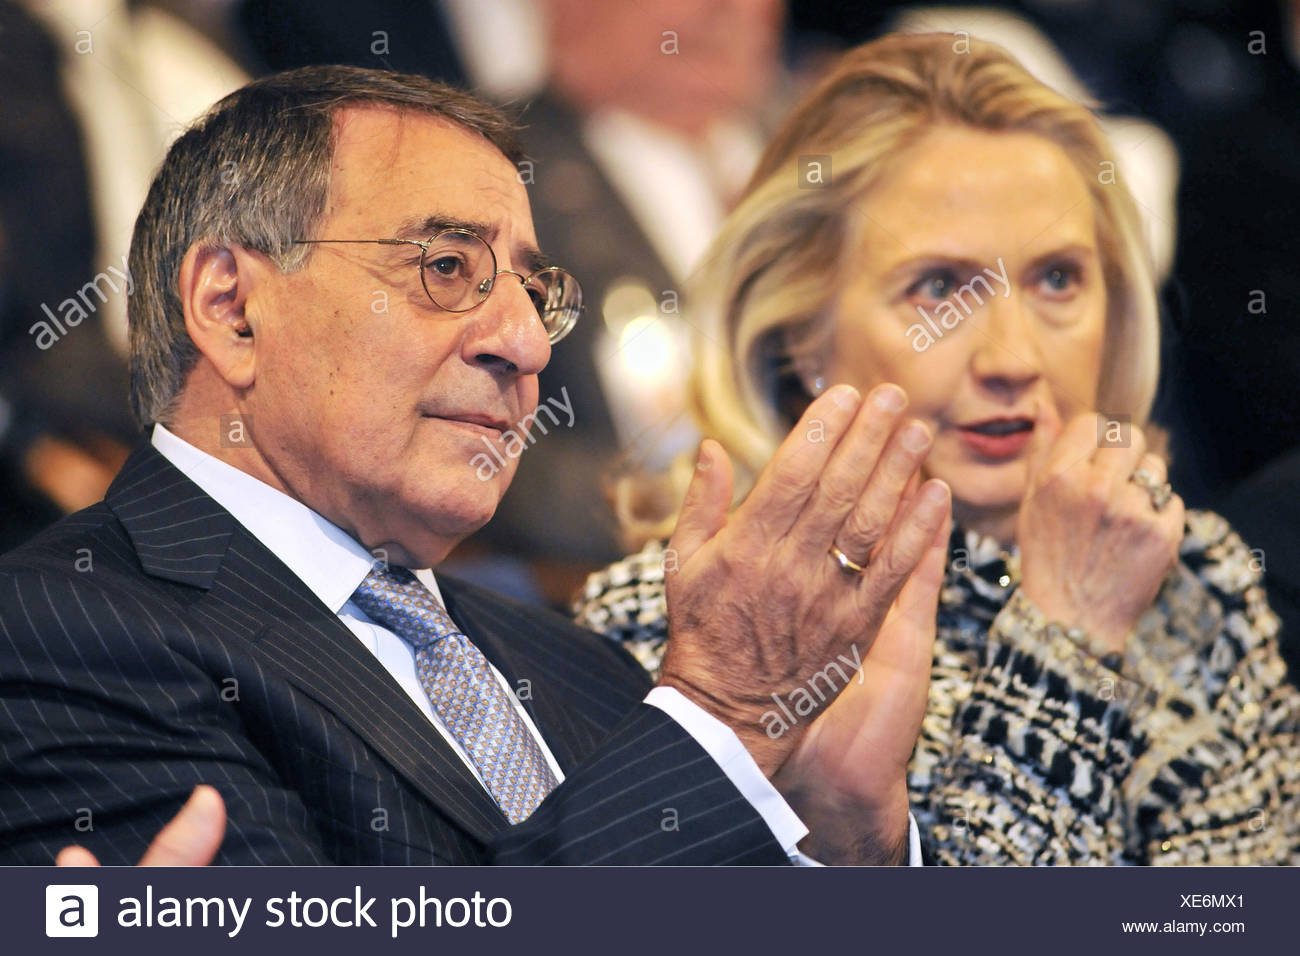 Panetta, Leon, * 28.6.1938, American politician (democrat), half length, with American Foreign minister Hillary Cinton, members on the Munich Conference on Security Policy, Hotel Bayerischer Hof, Munich, Germany, 4.2.2012, Additional-Rights-Clearances-NA - Stock Image